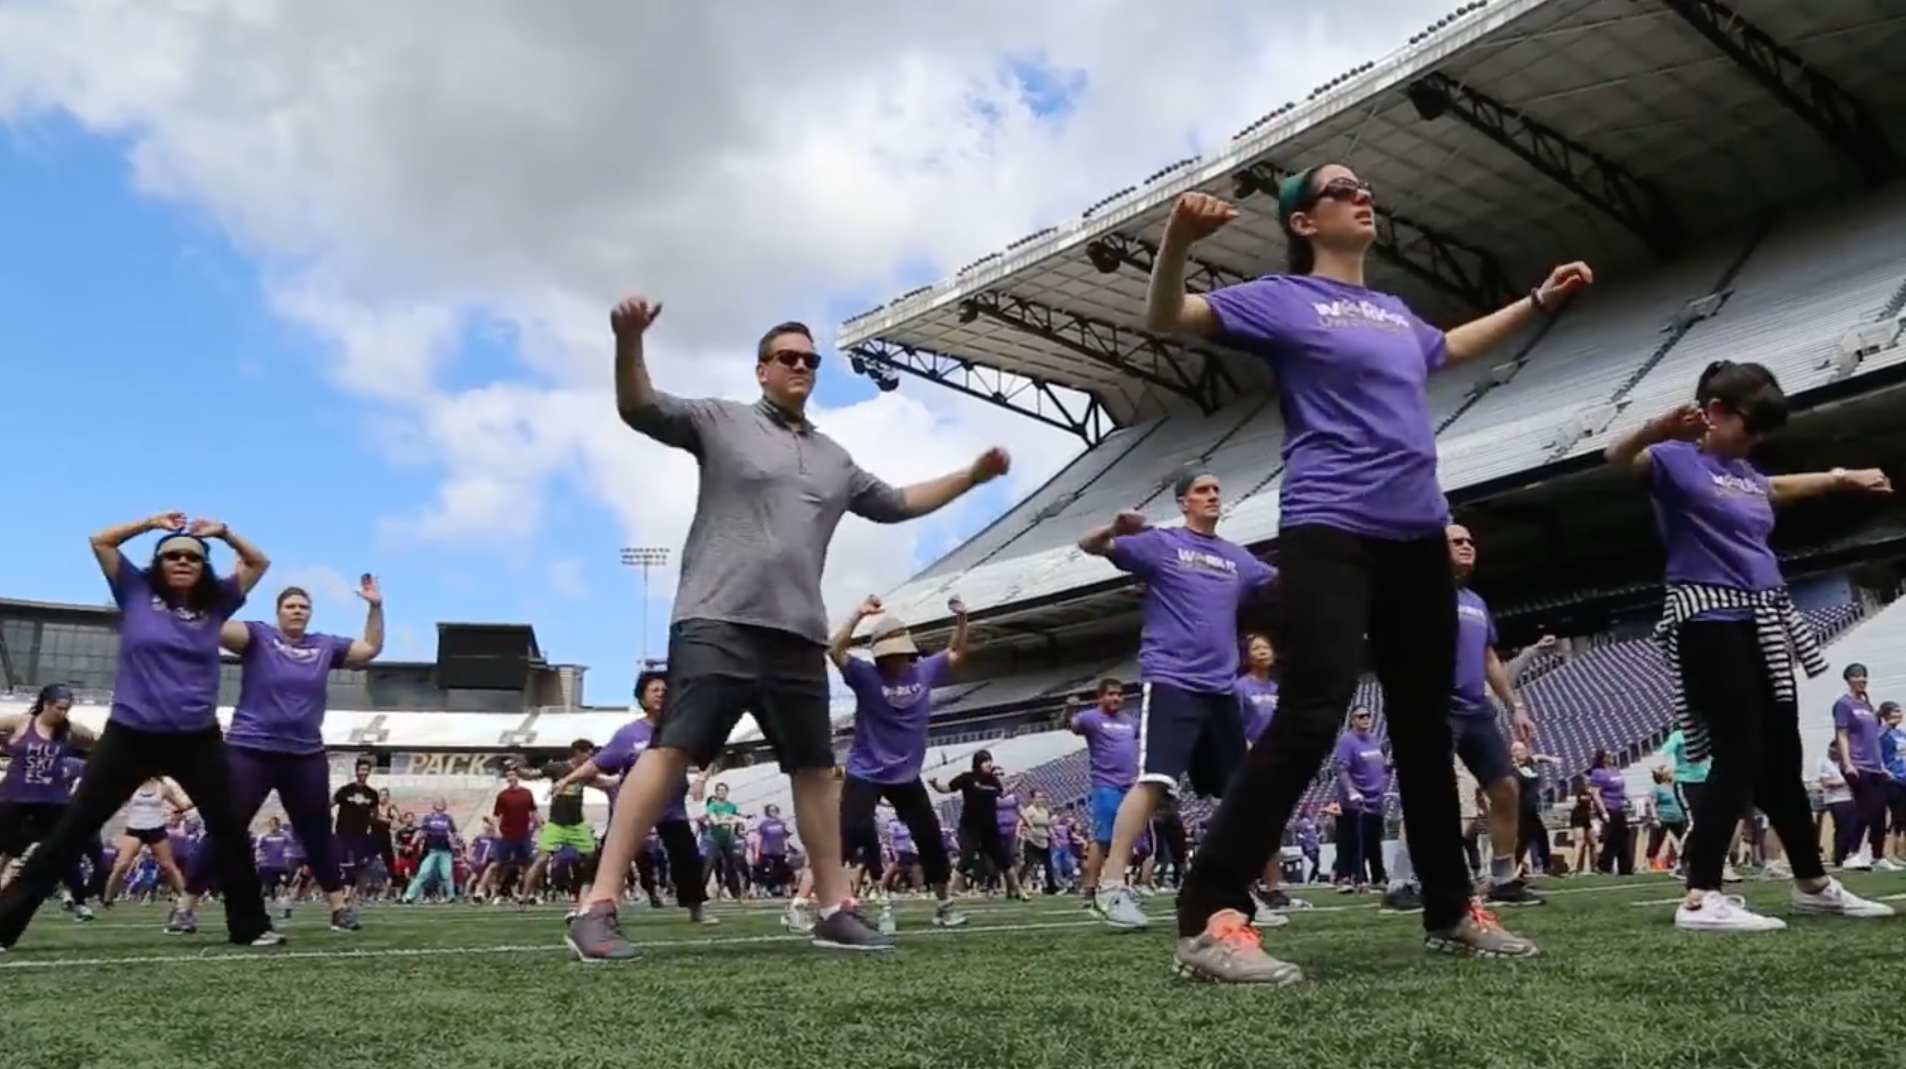 UW Fitness Day 2017 - On May 24, hundreds took the field at Husky Stadium to celebrate fitness' many forms